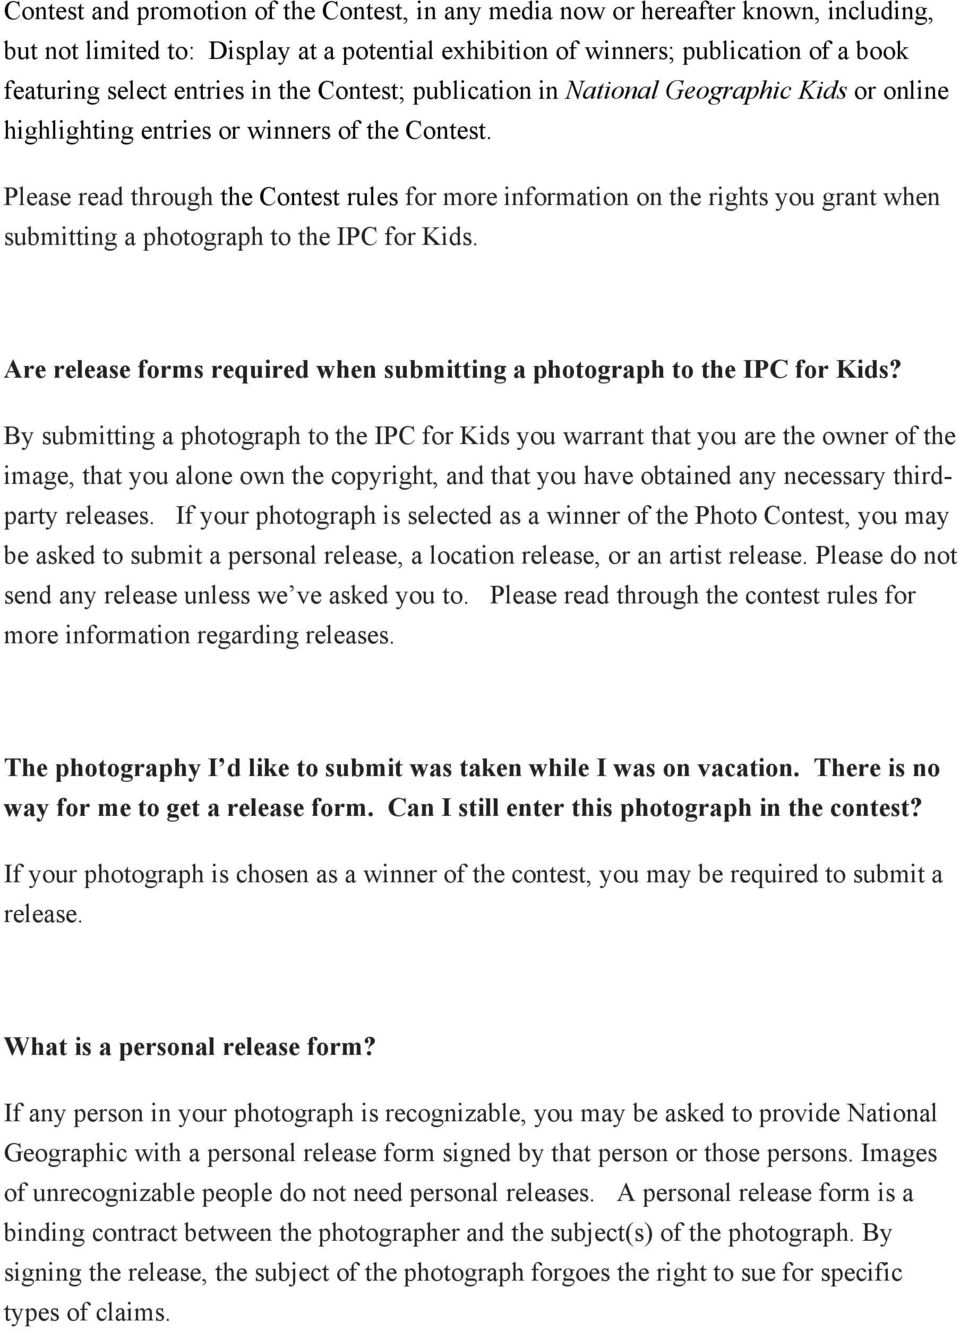 Please read through the Contest rules for more information on the rights you grant when submitting a photograph to the IPC for Kids.